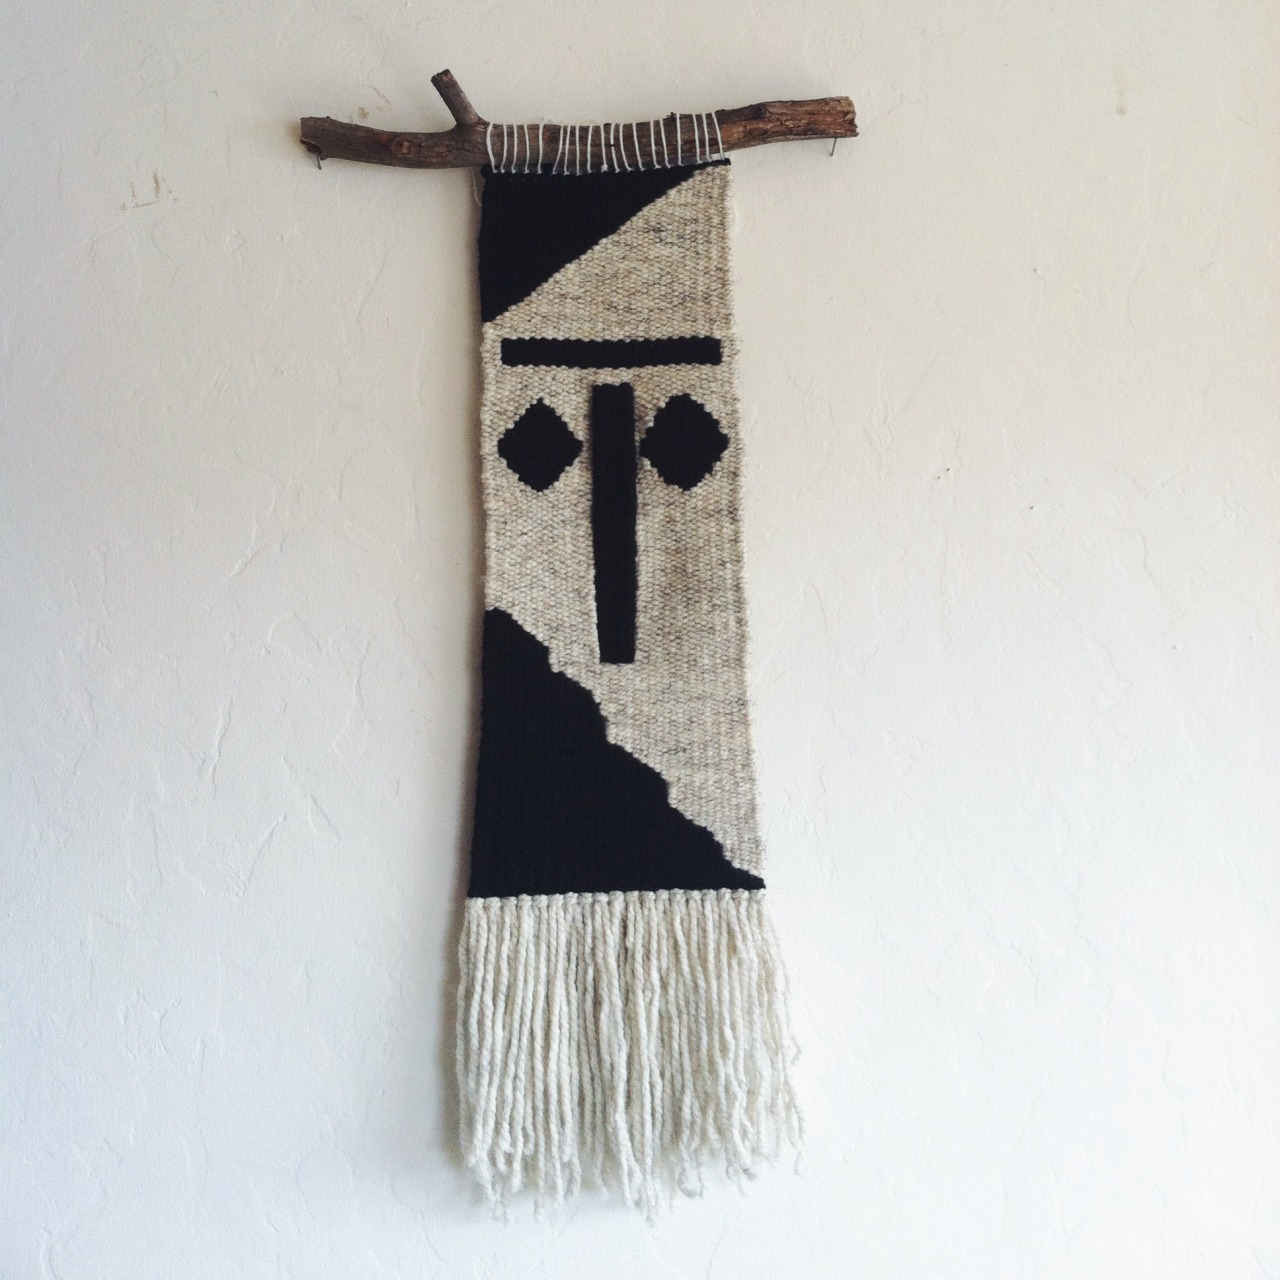 Weaving by Kara McMullen, in collaboration with Ryan Riss